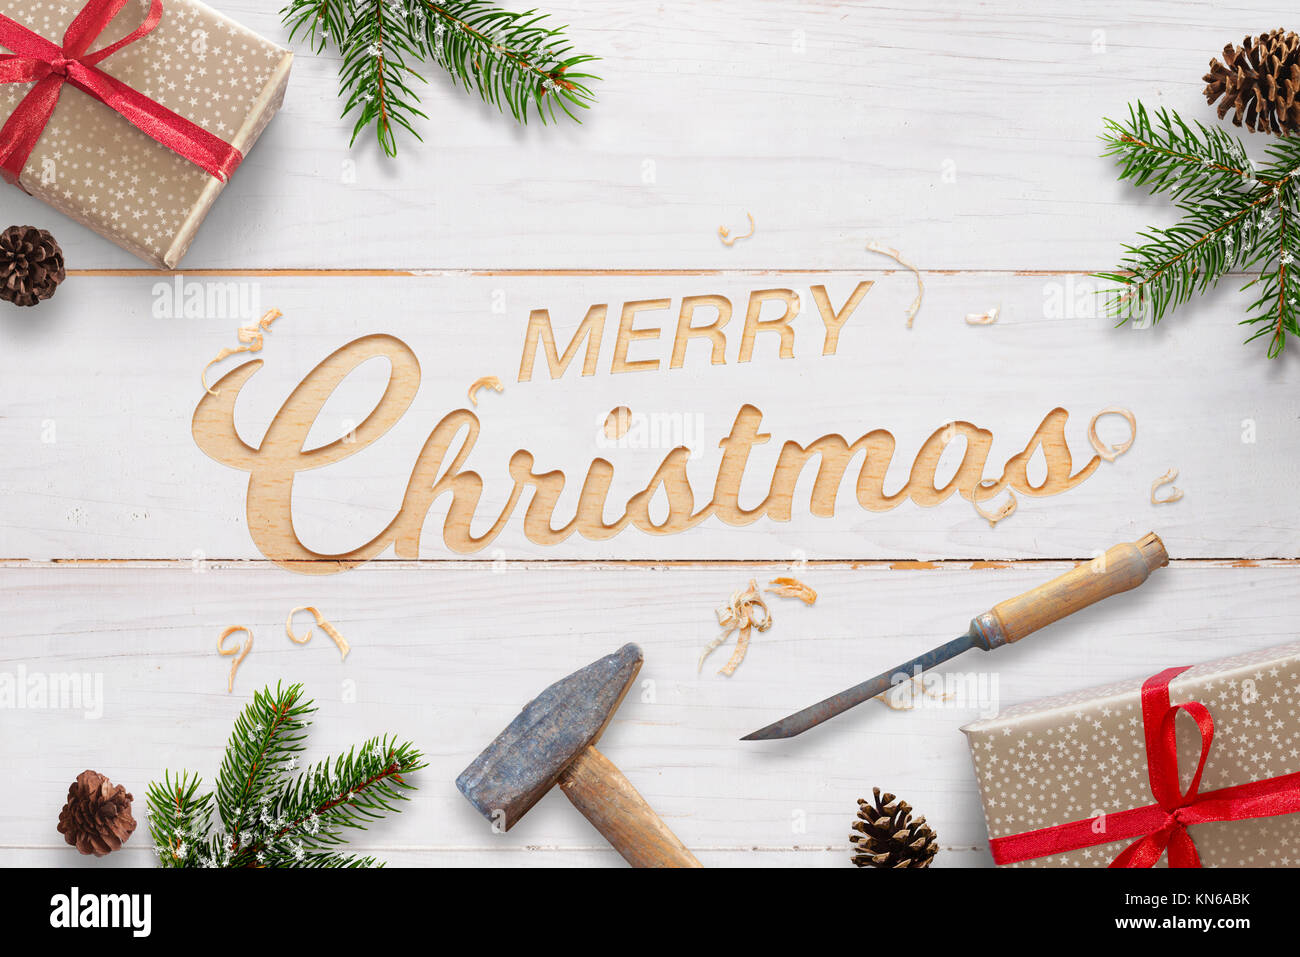 Flat Christmas greeting with carved text into white wooden surface with chisel and hammer. Christmas fir branches, Stock Photo